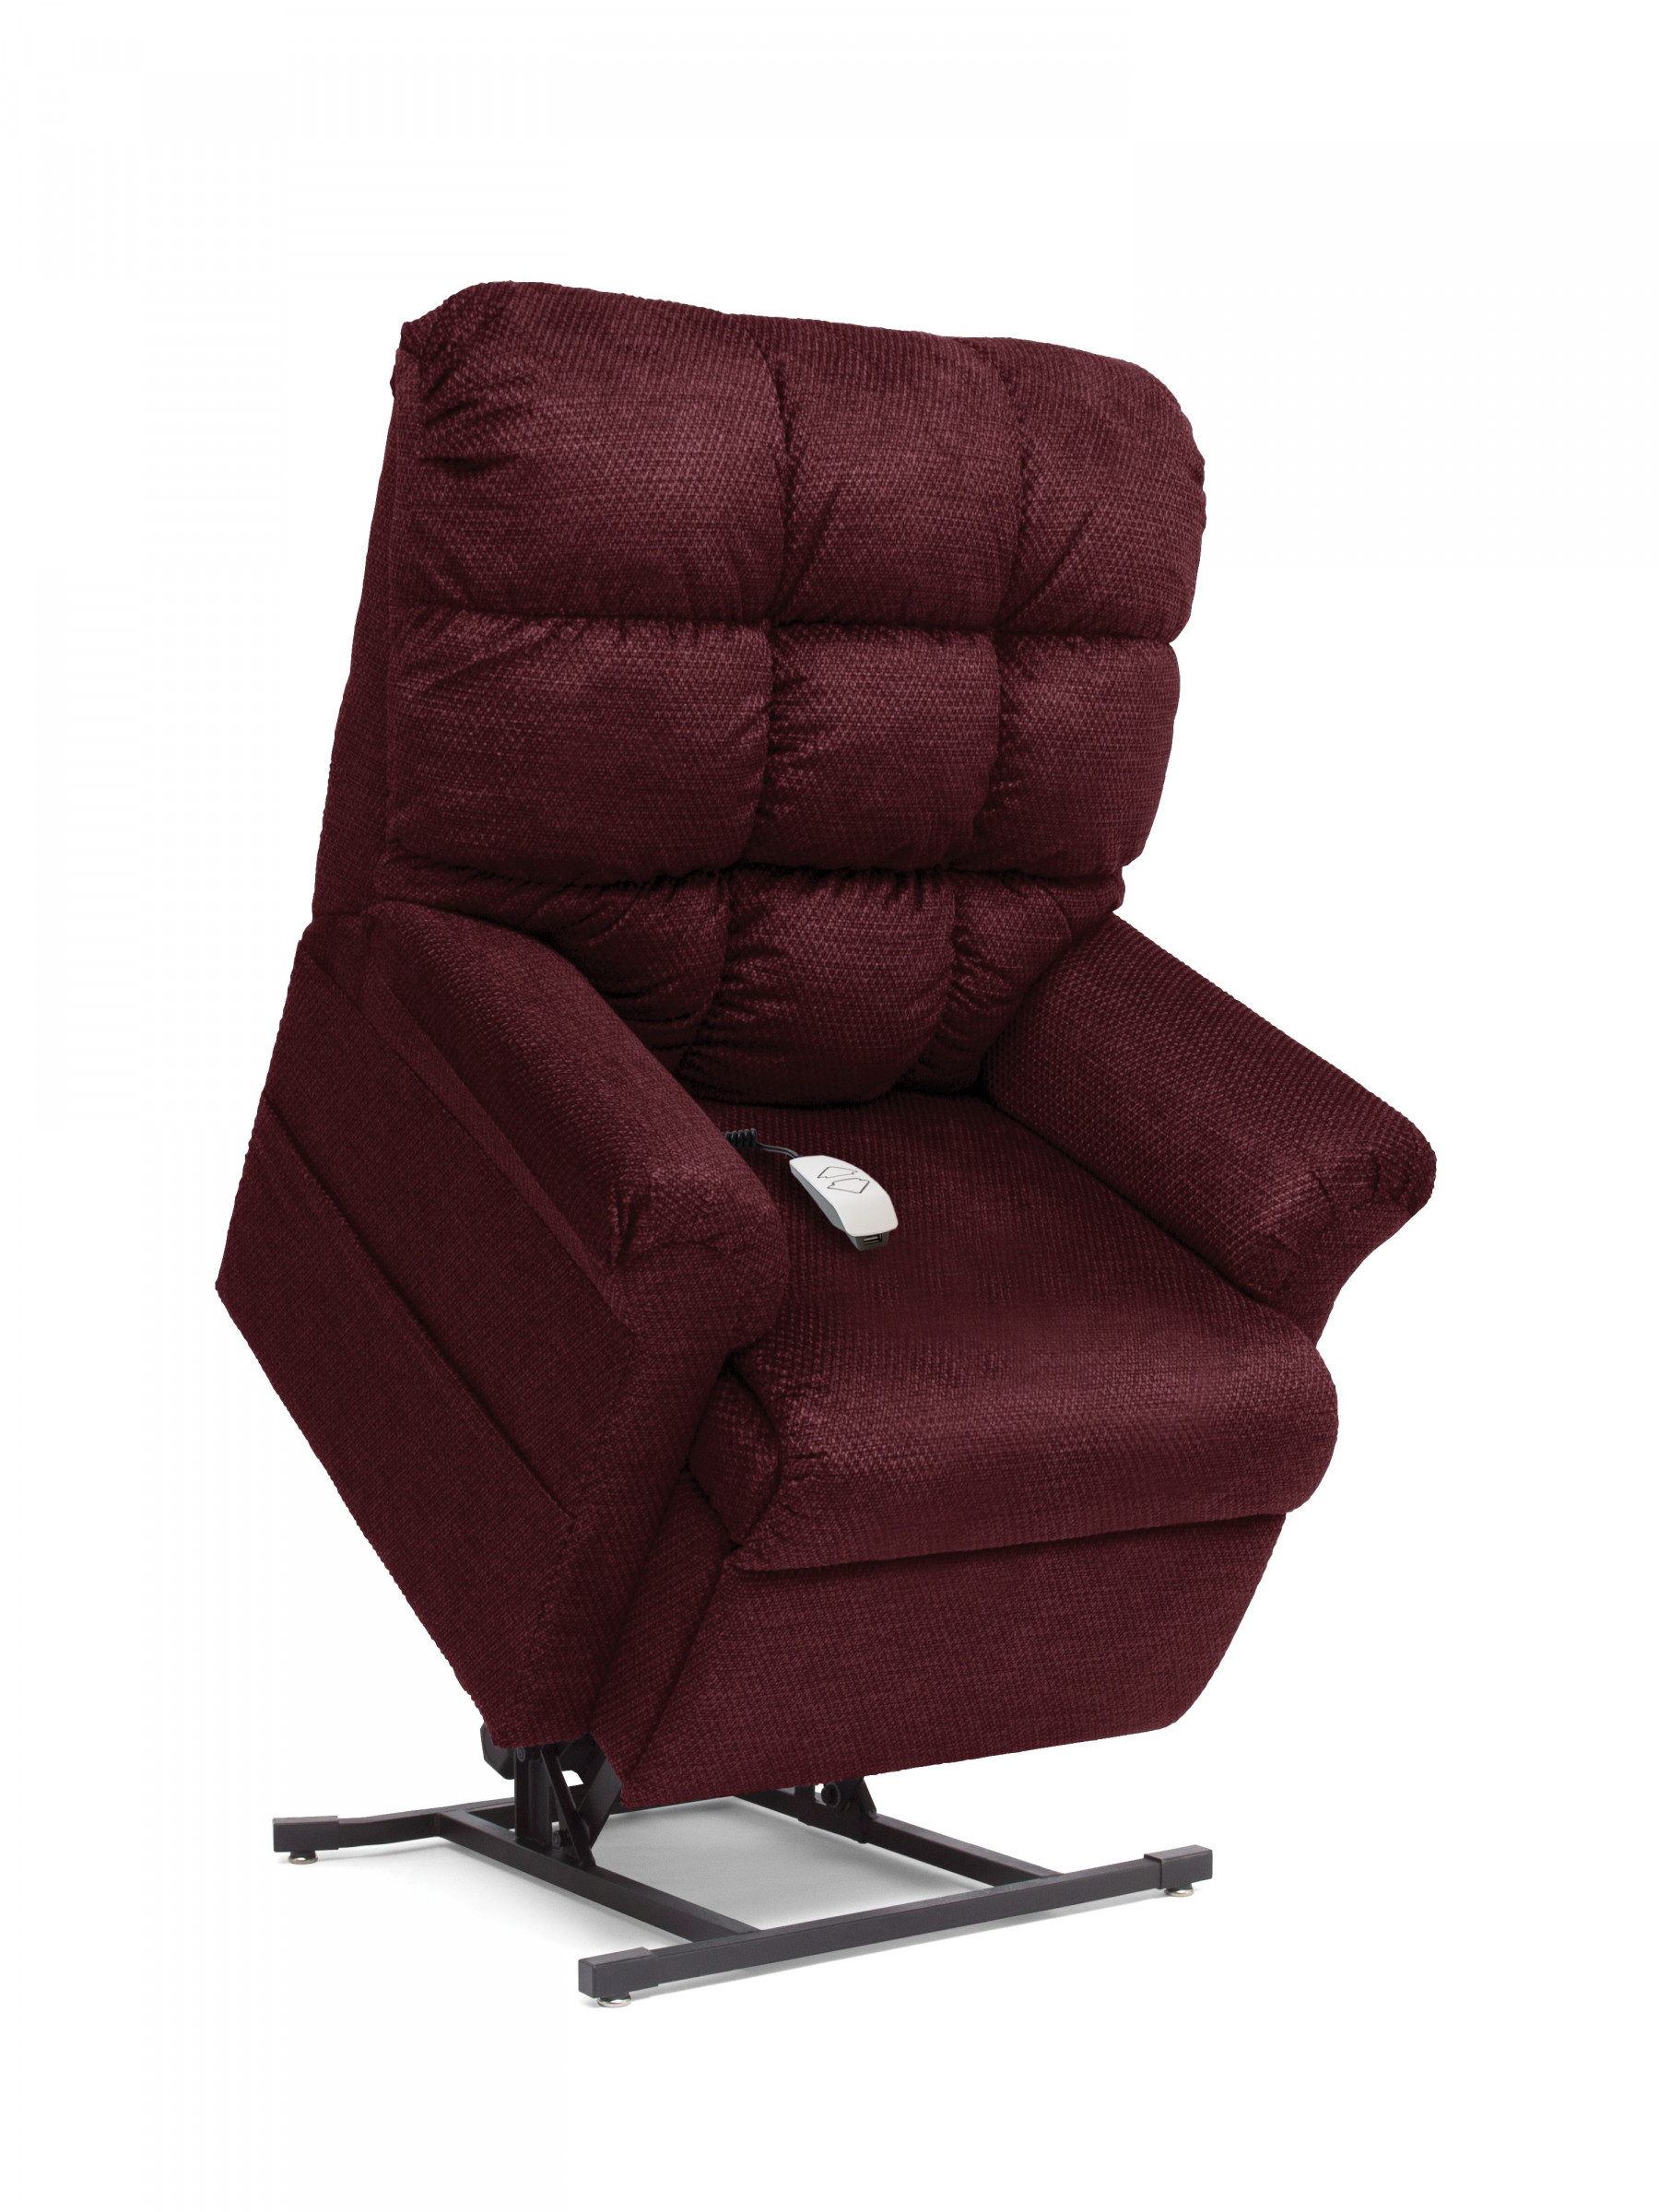 Buy 3 Get 1 Free Tires >> Elegance LC-485 3-Position Lift chair by Pride Mobility - Best Price